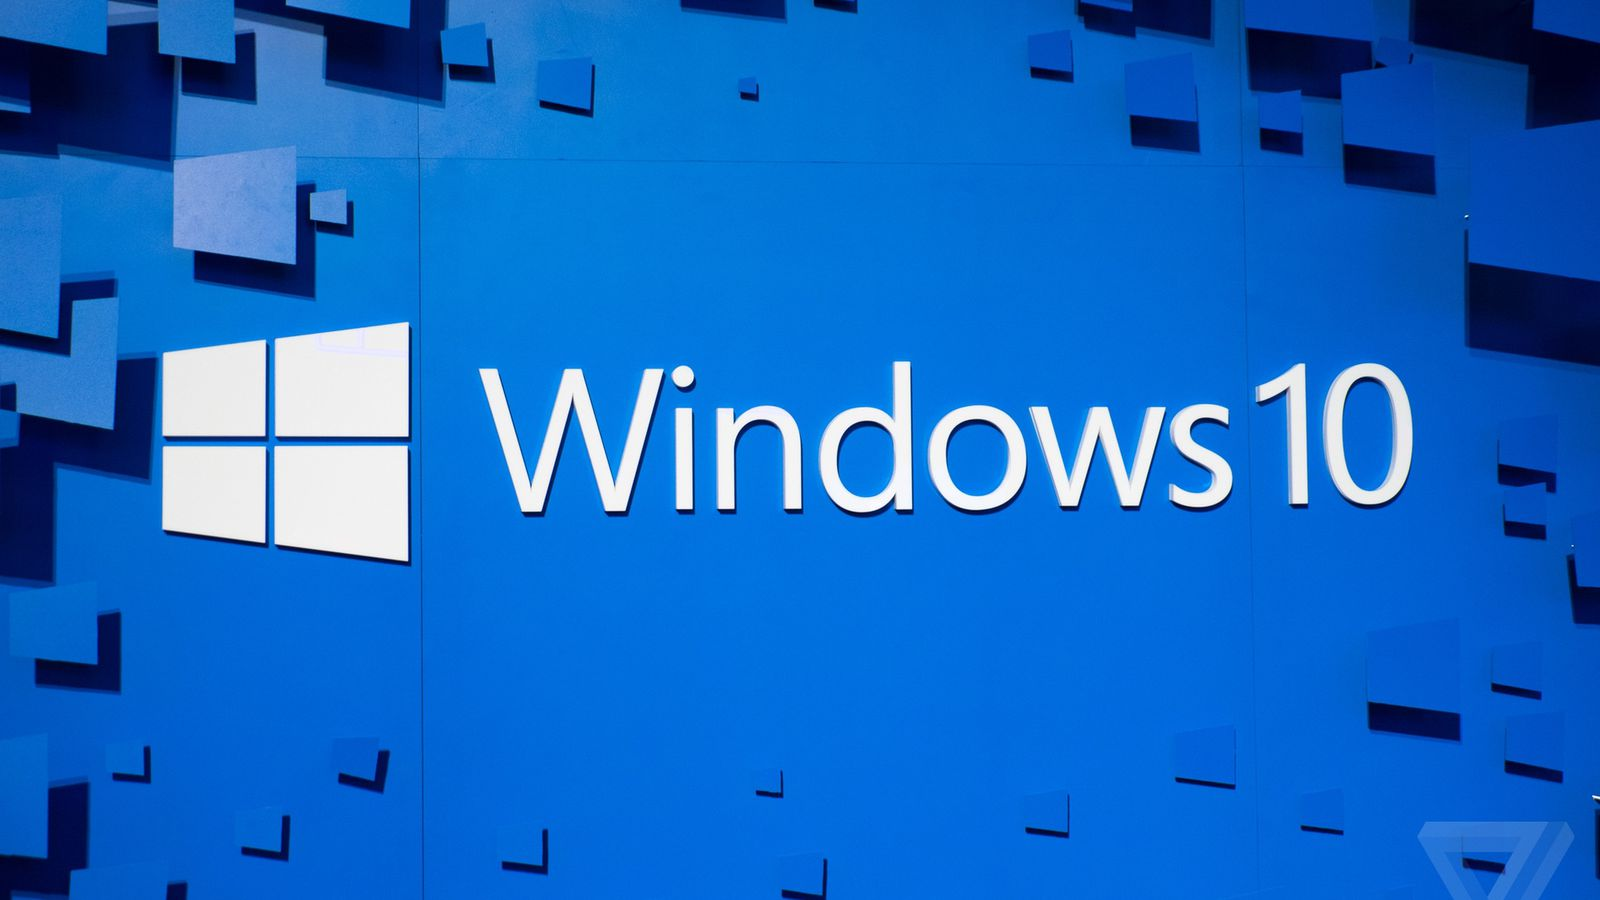 Microsoft confirms some Windows 10 source code has leaked